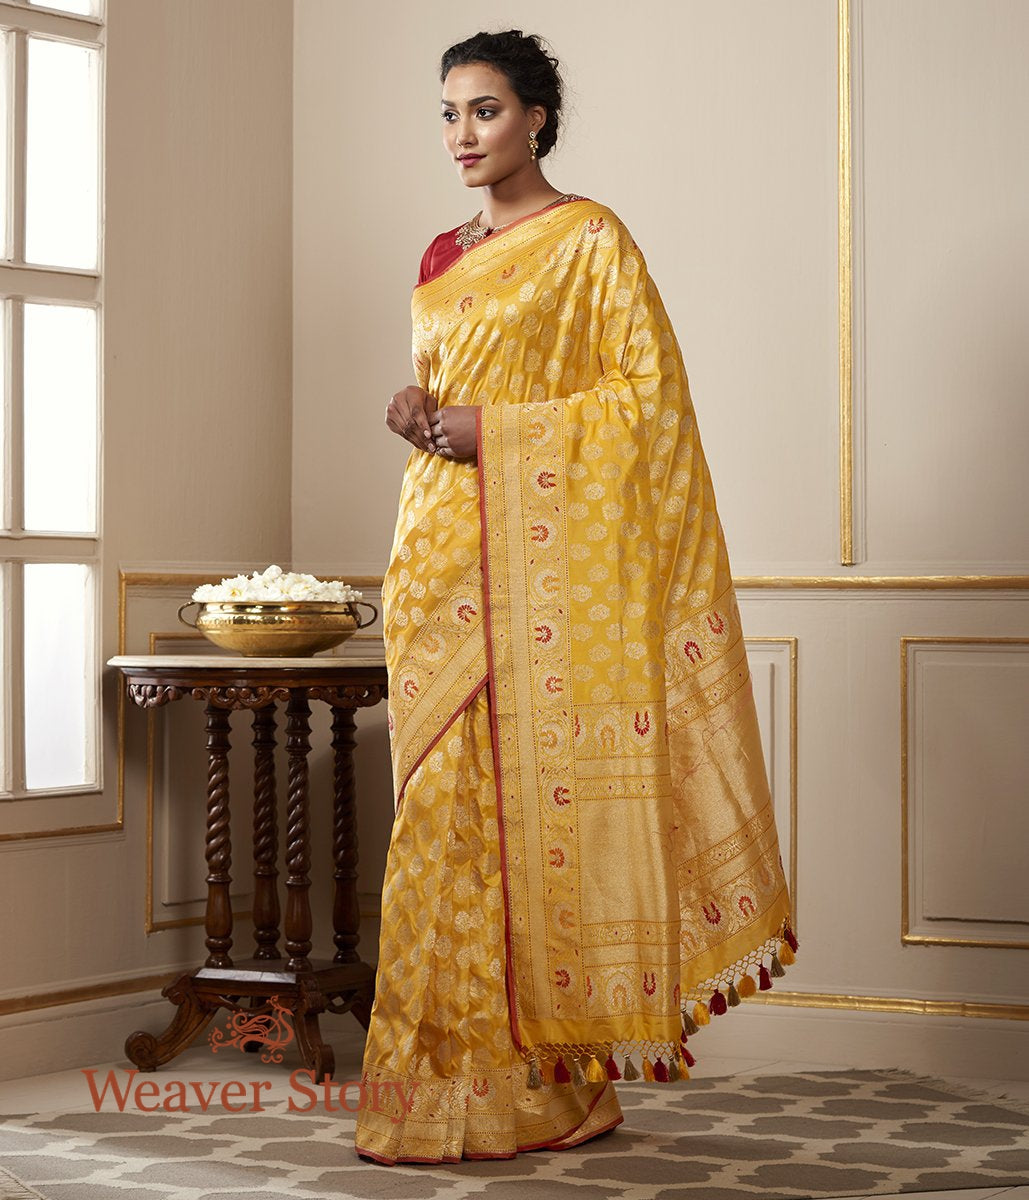 Handwoven Yellow Kadhwa Jangla with Meenakari